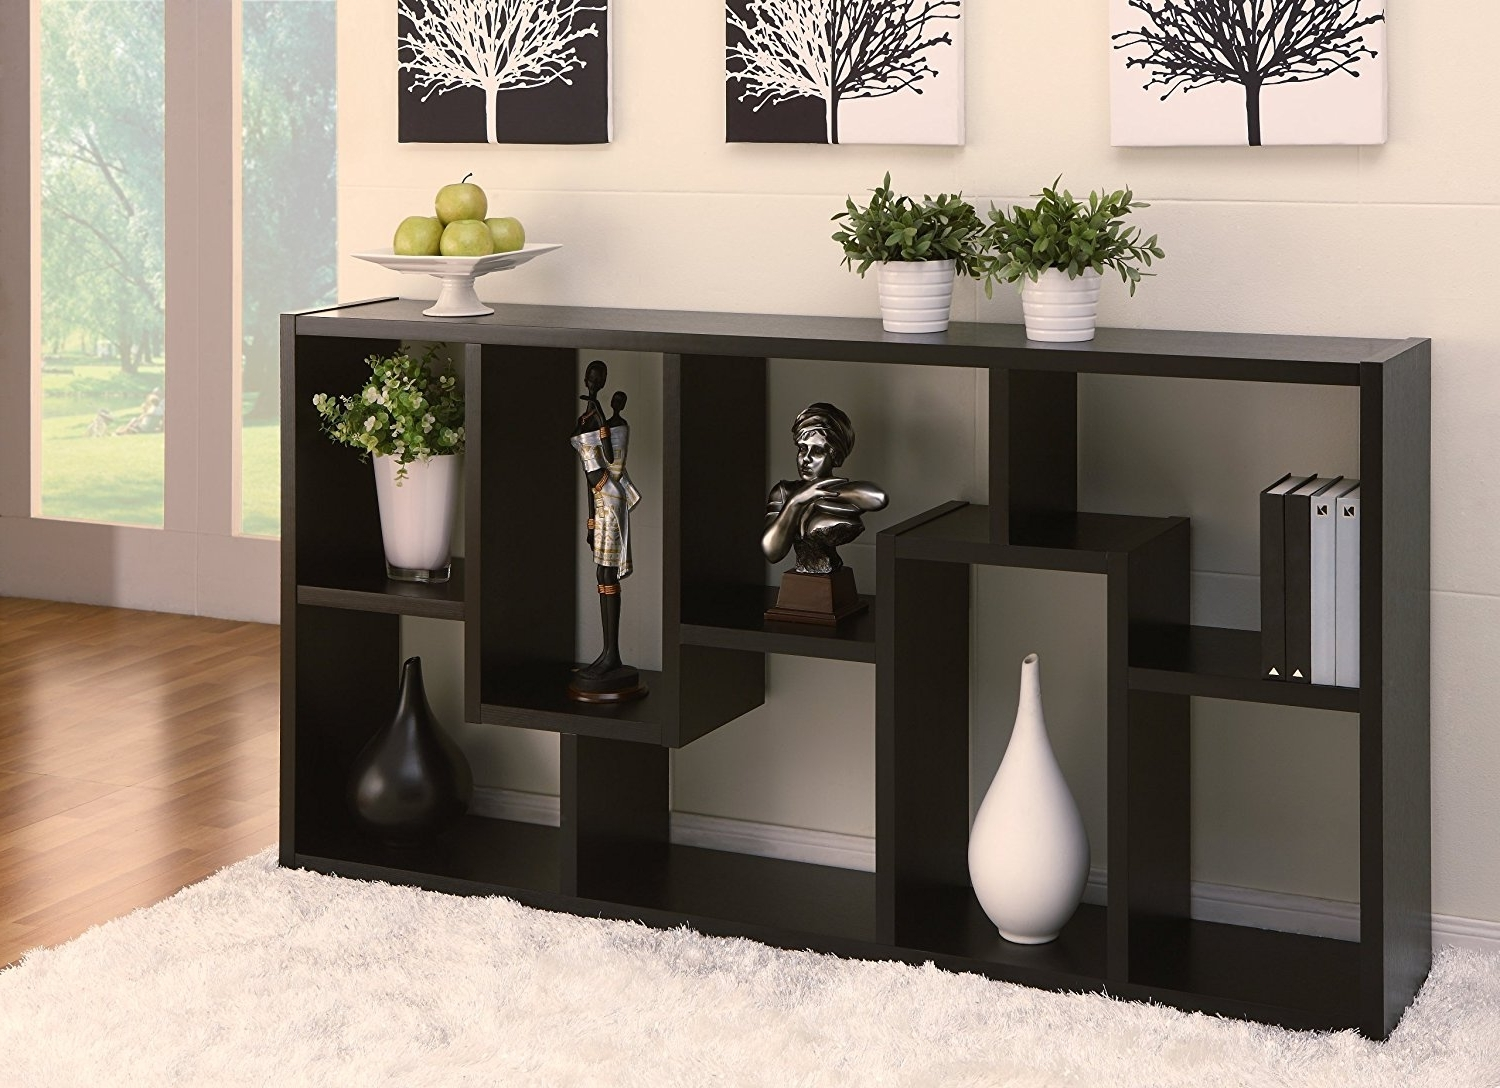 Most Current Backless Bookshelves For Amazon: Iohomes Modern Backless Display Stand/bookcase, Black (View 15 of 15)